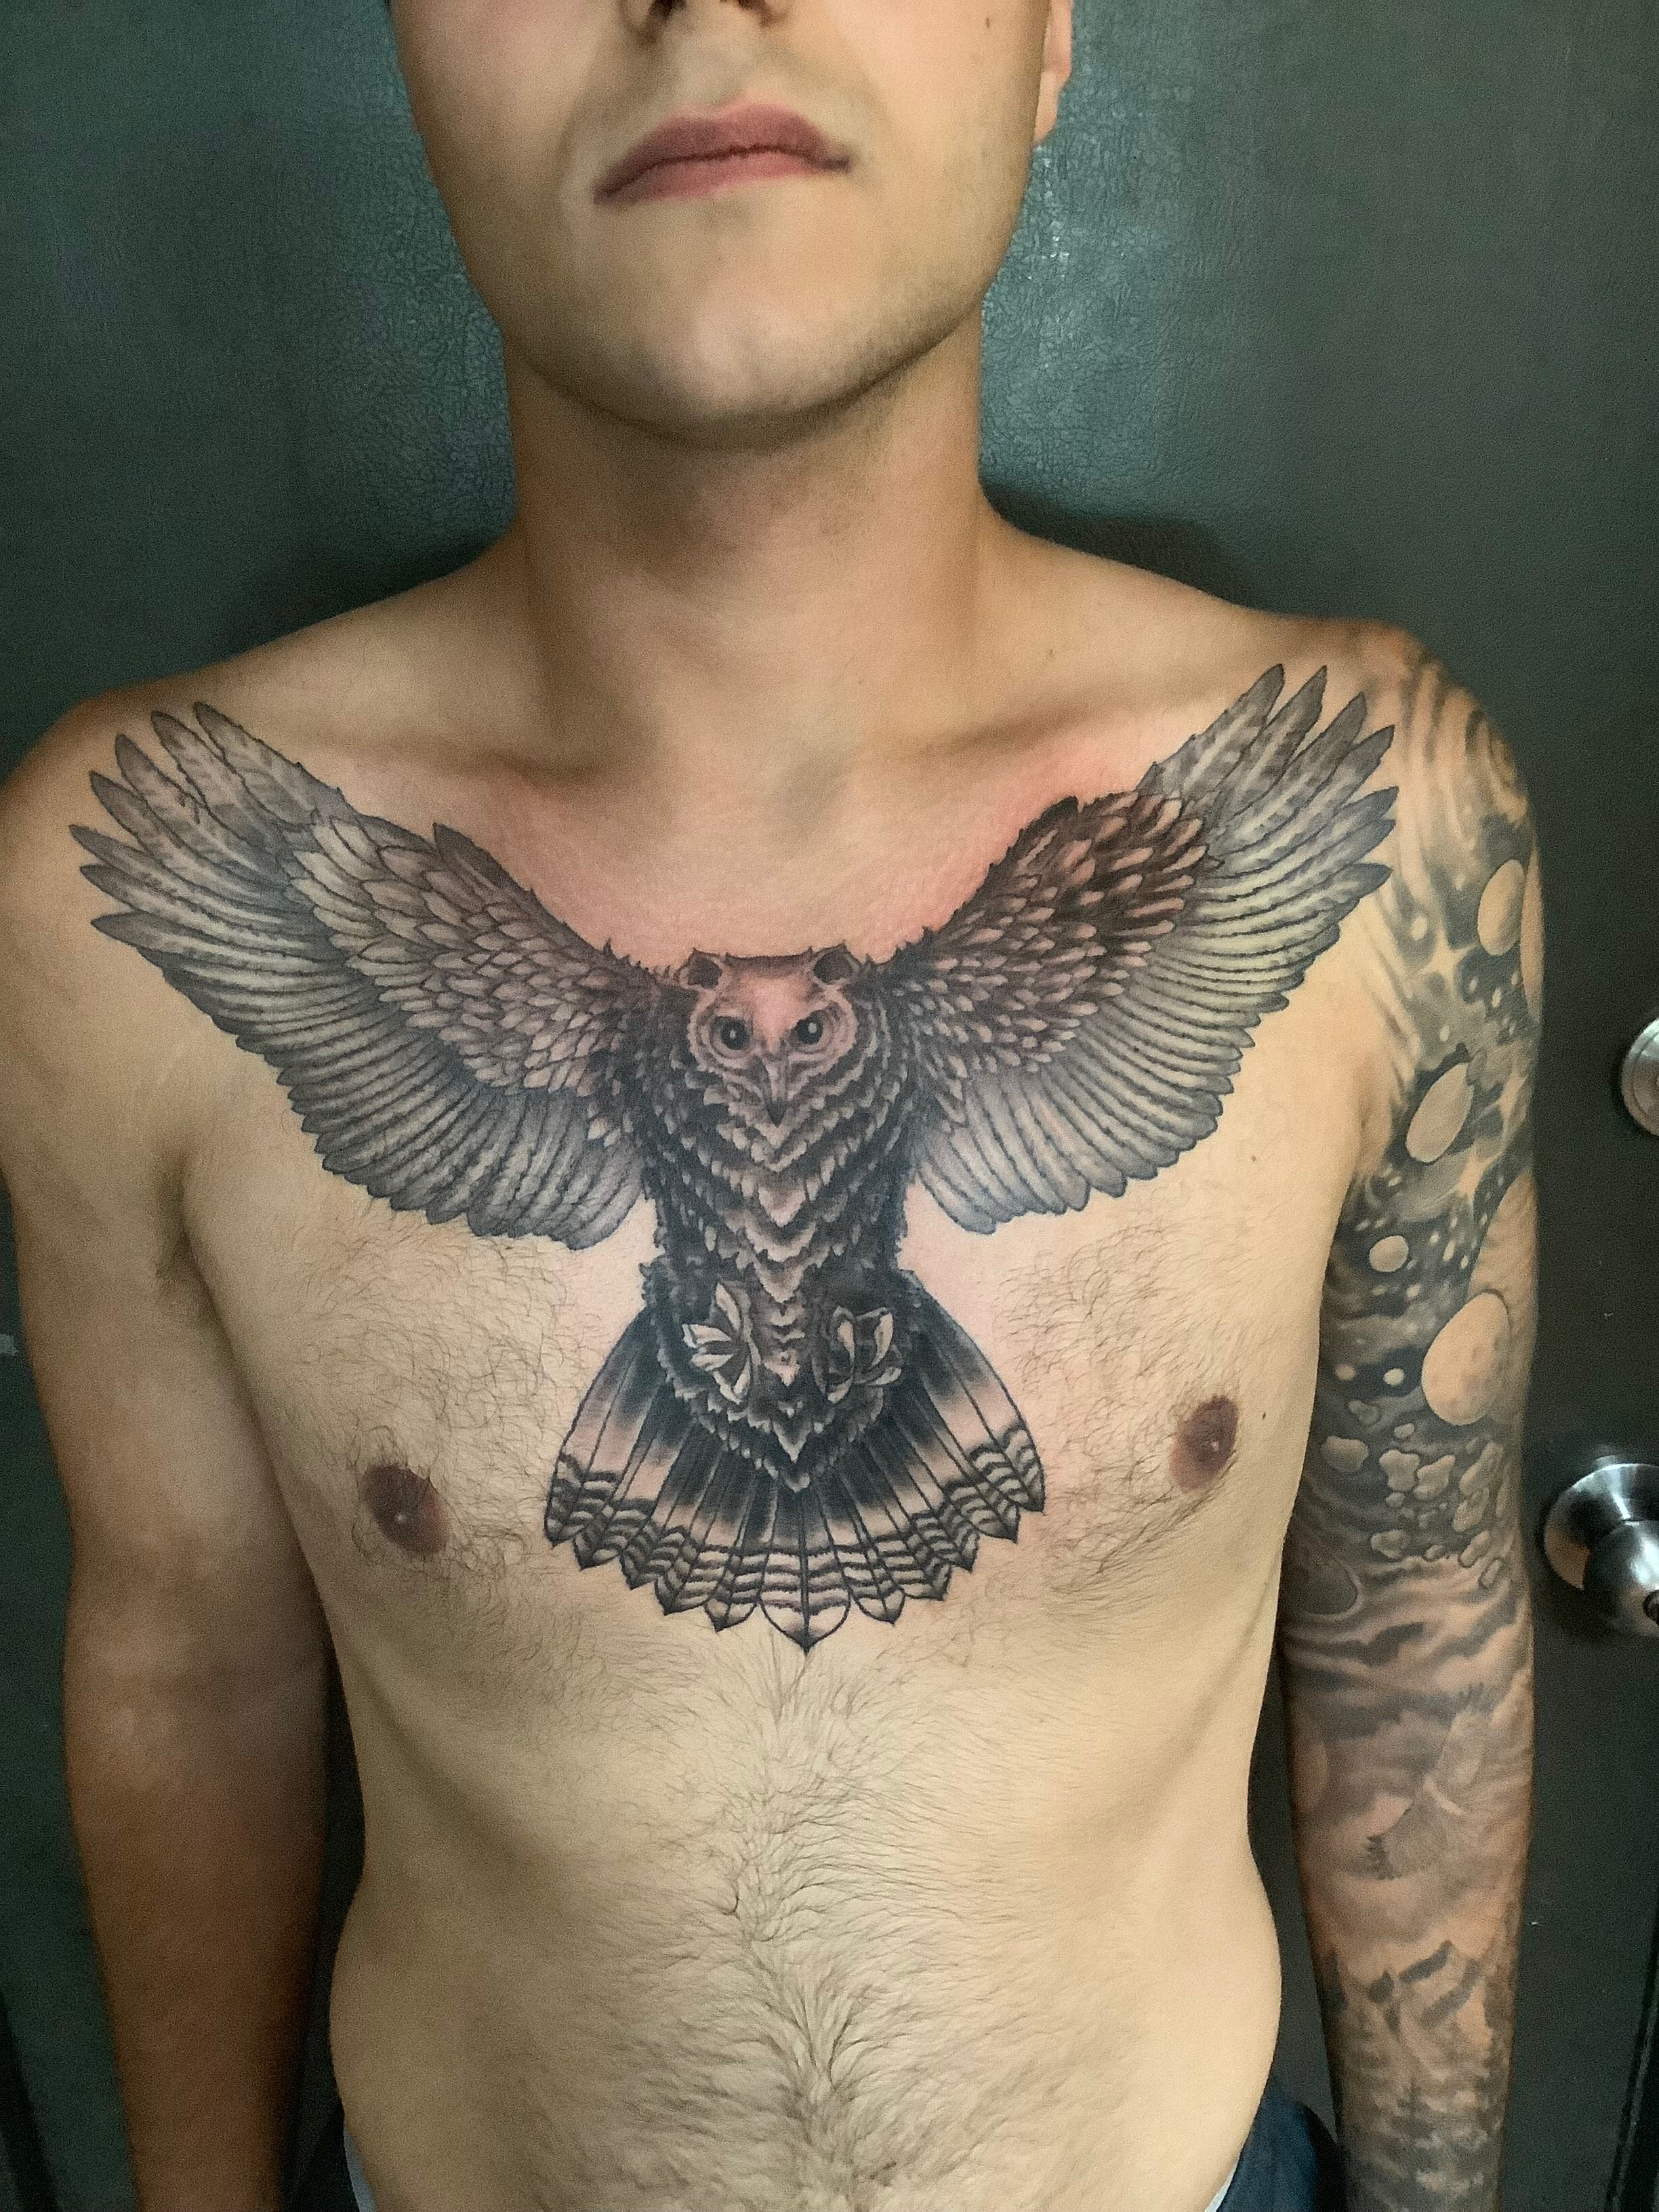 Tattoo of the Week by James Delzel.